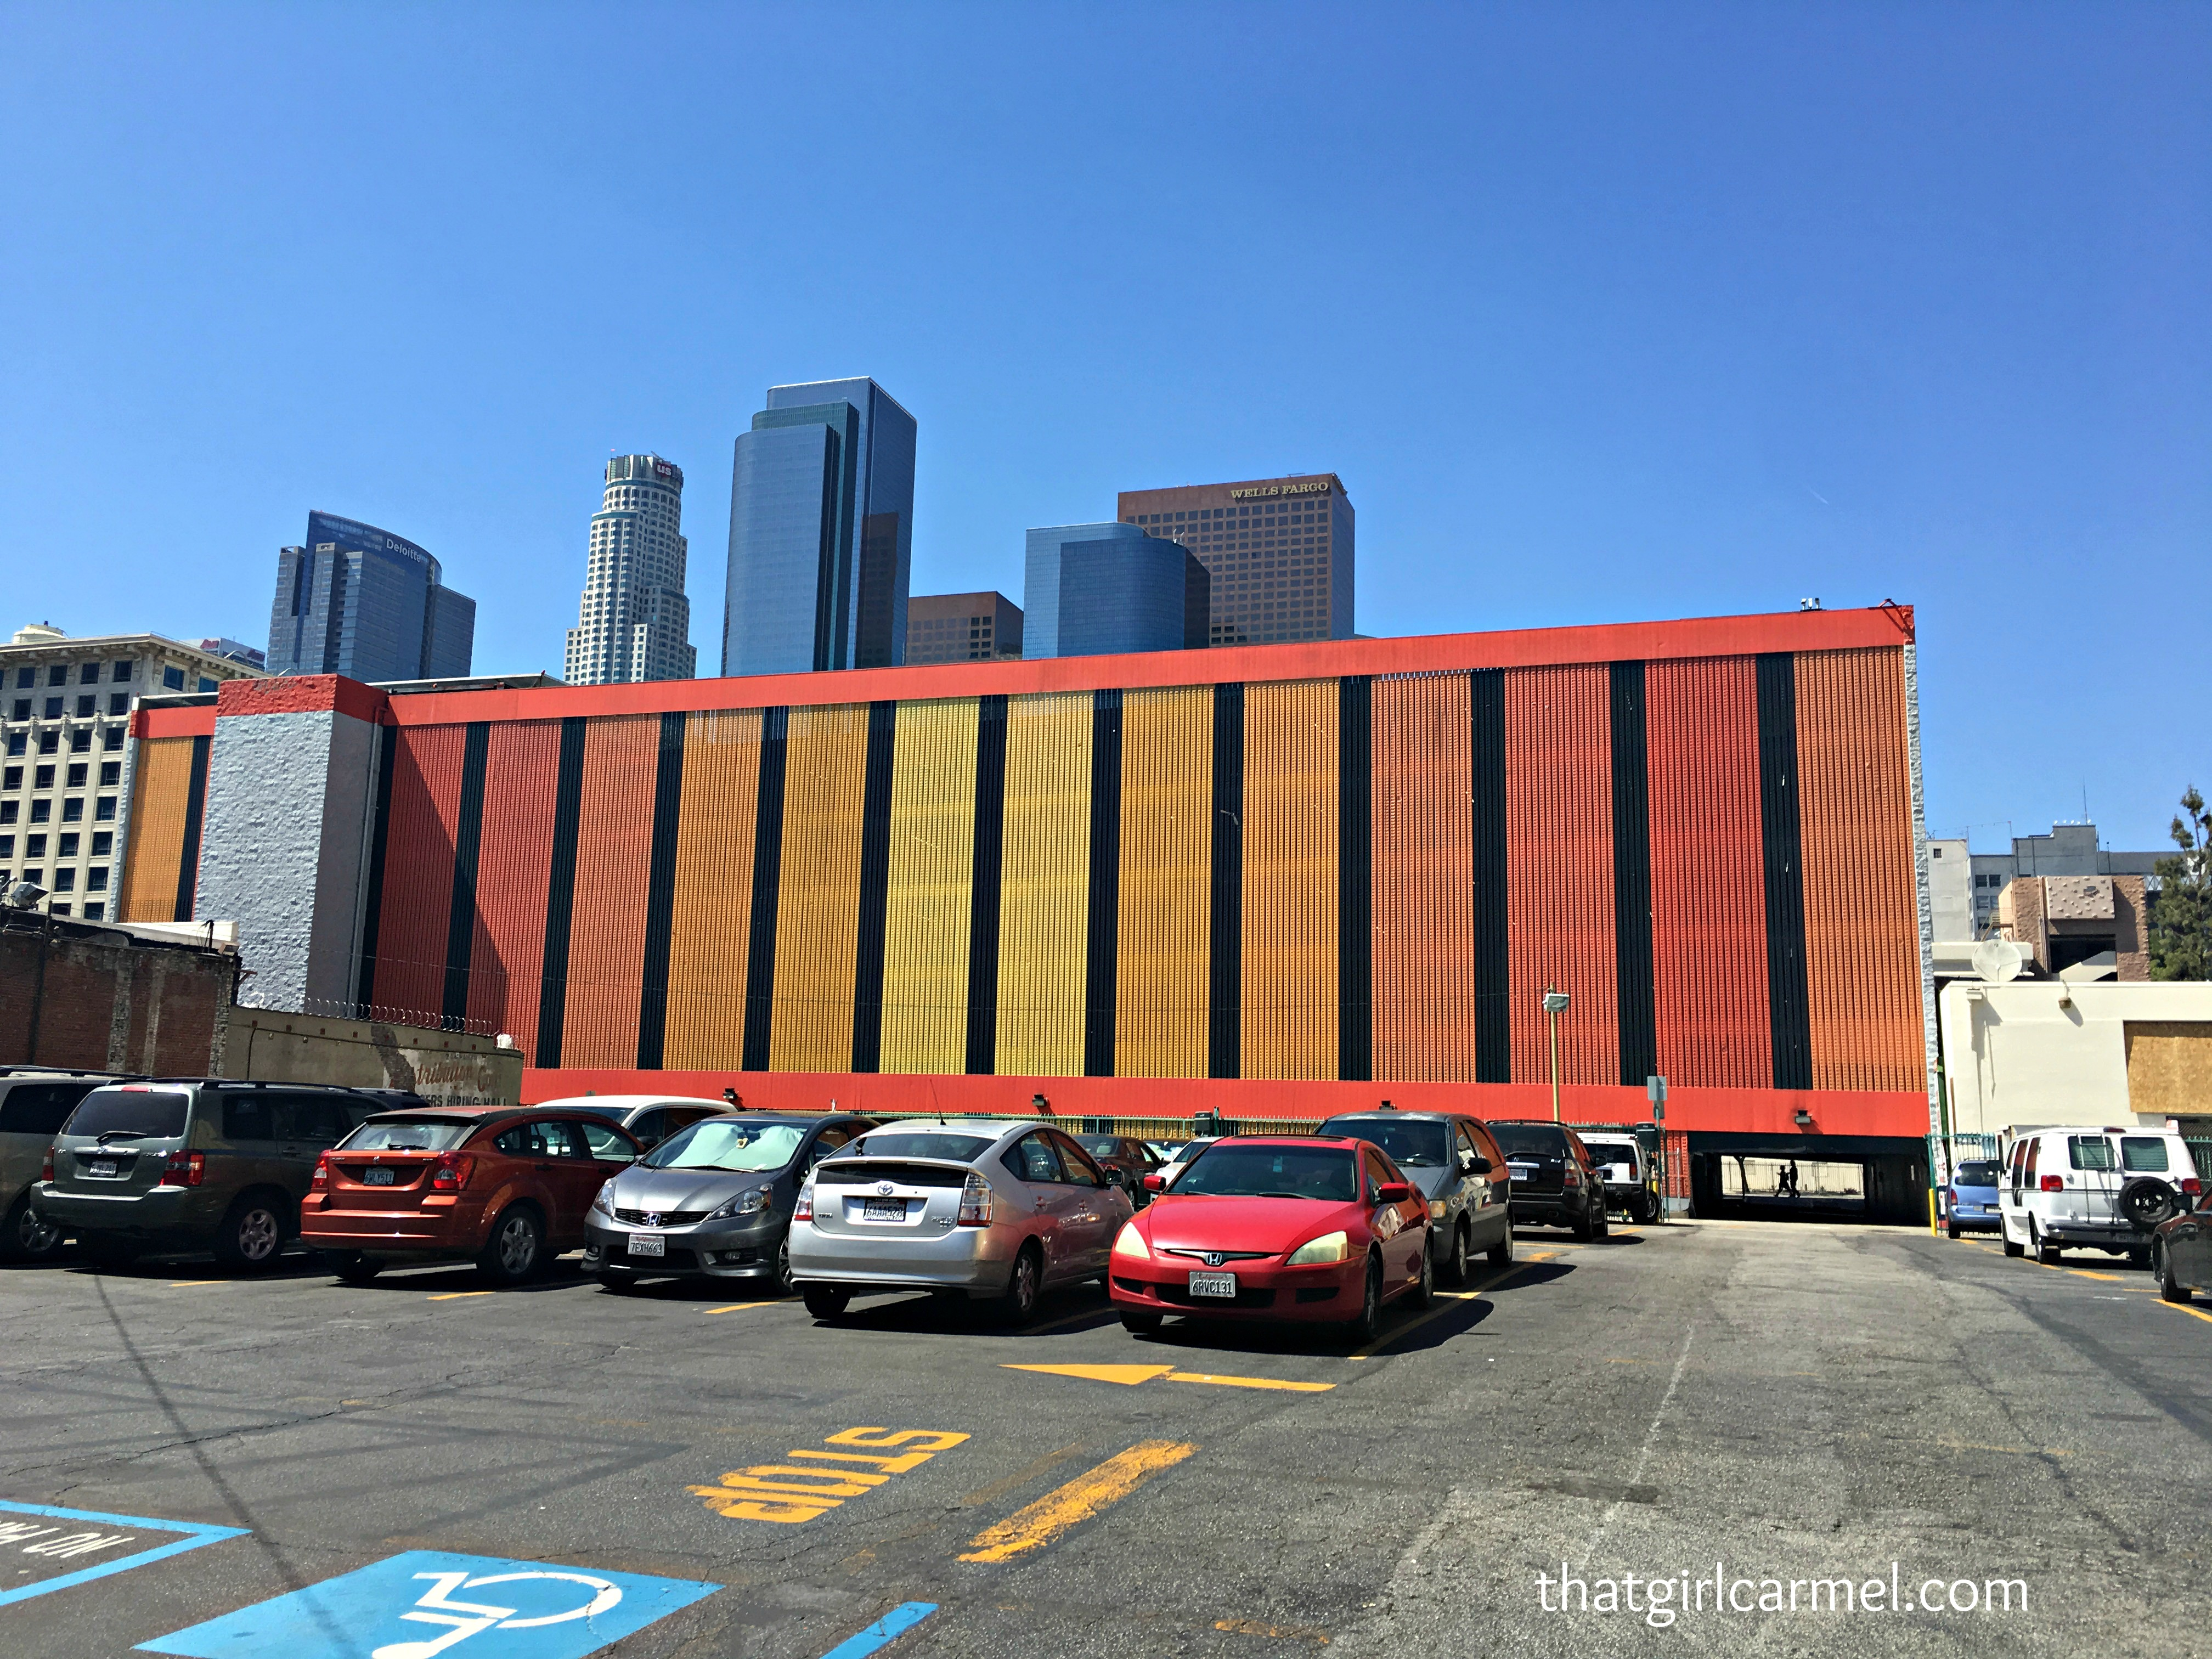 Walked past this colorful parking garage en route to lunch downtown last weekend